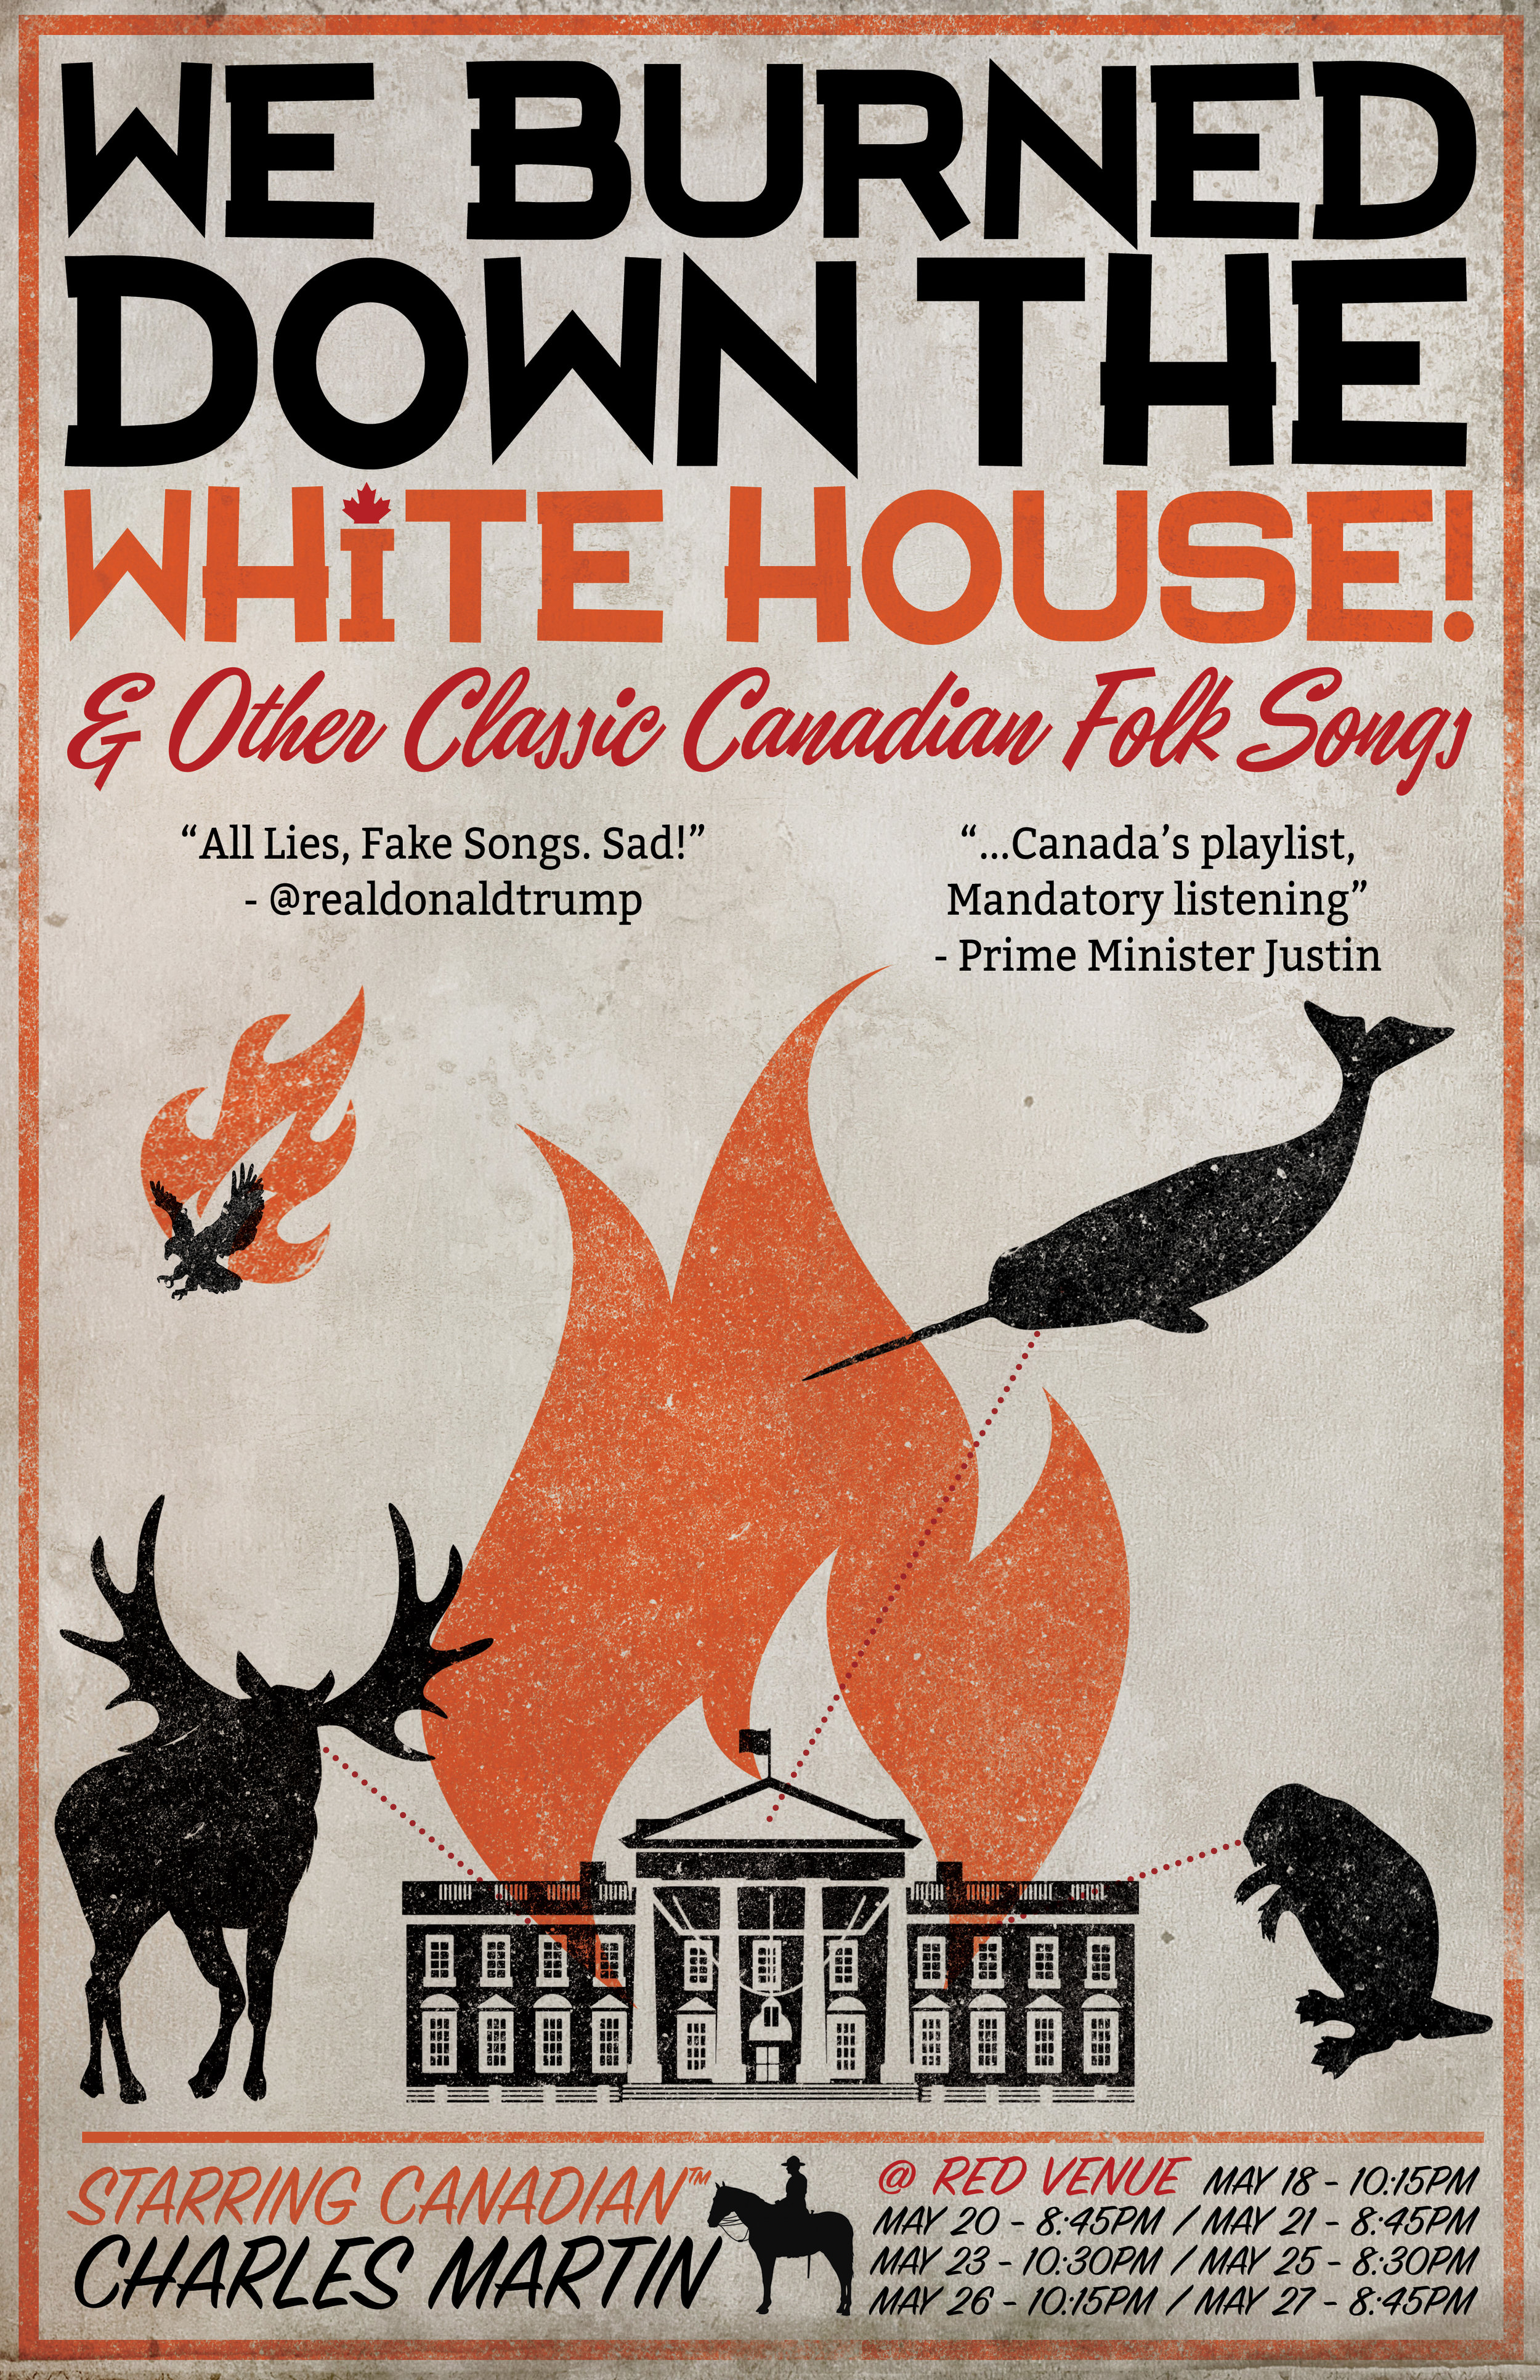 Burned_down_the_White_house__11x17_poster-Recovered.jpg